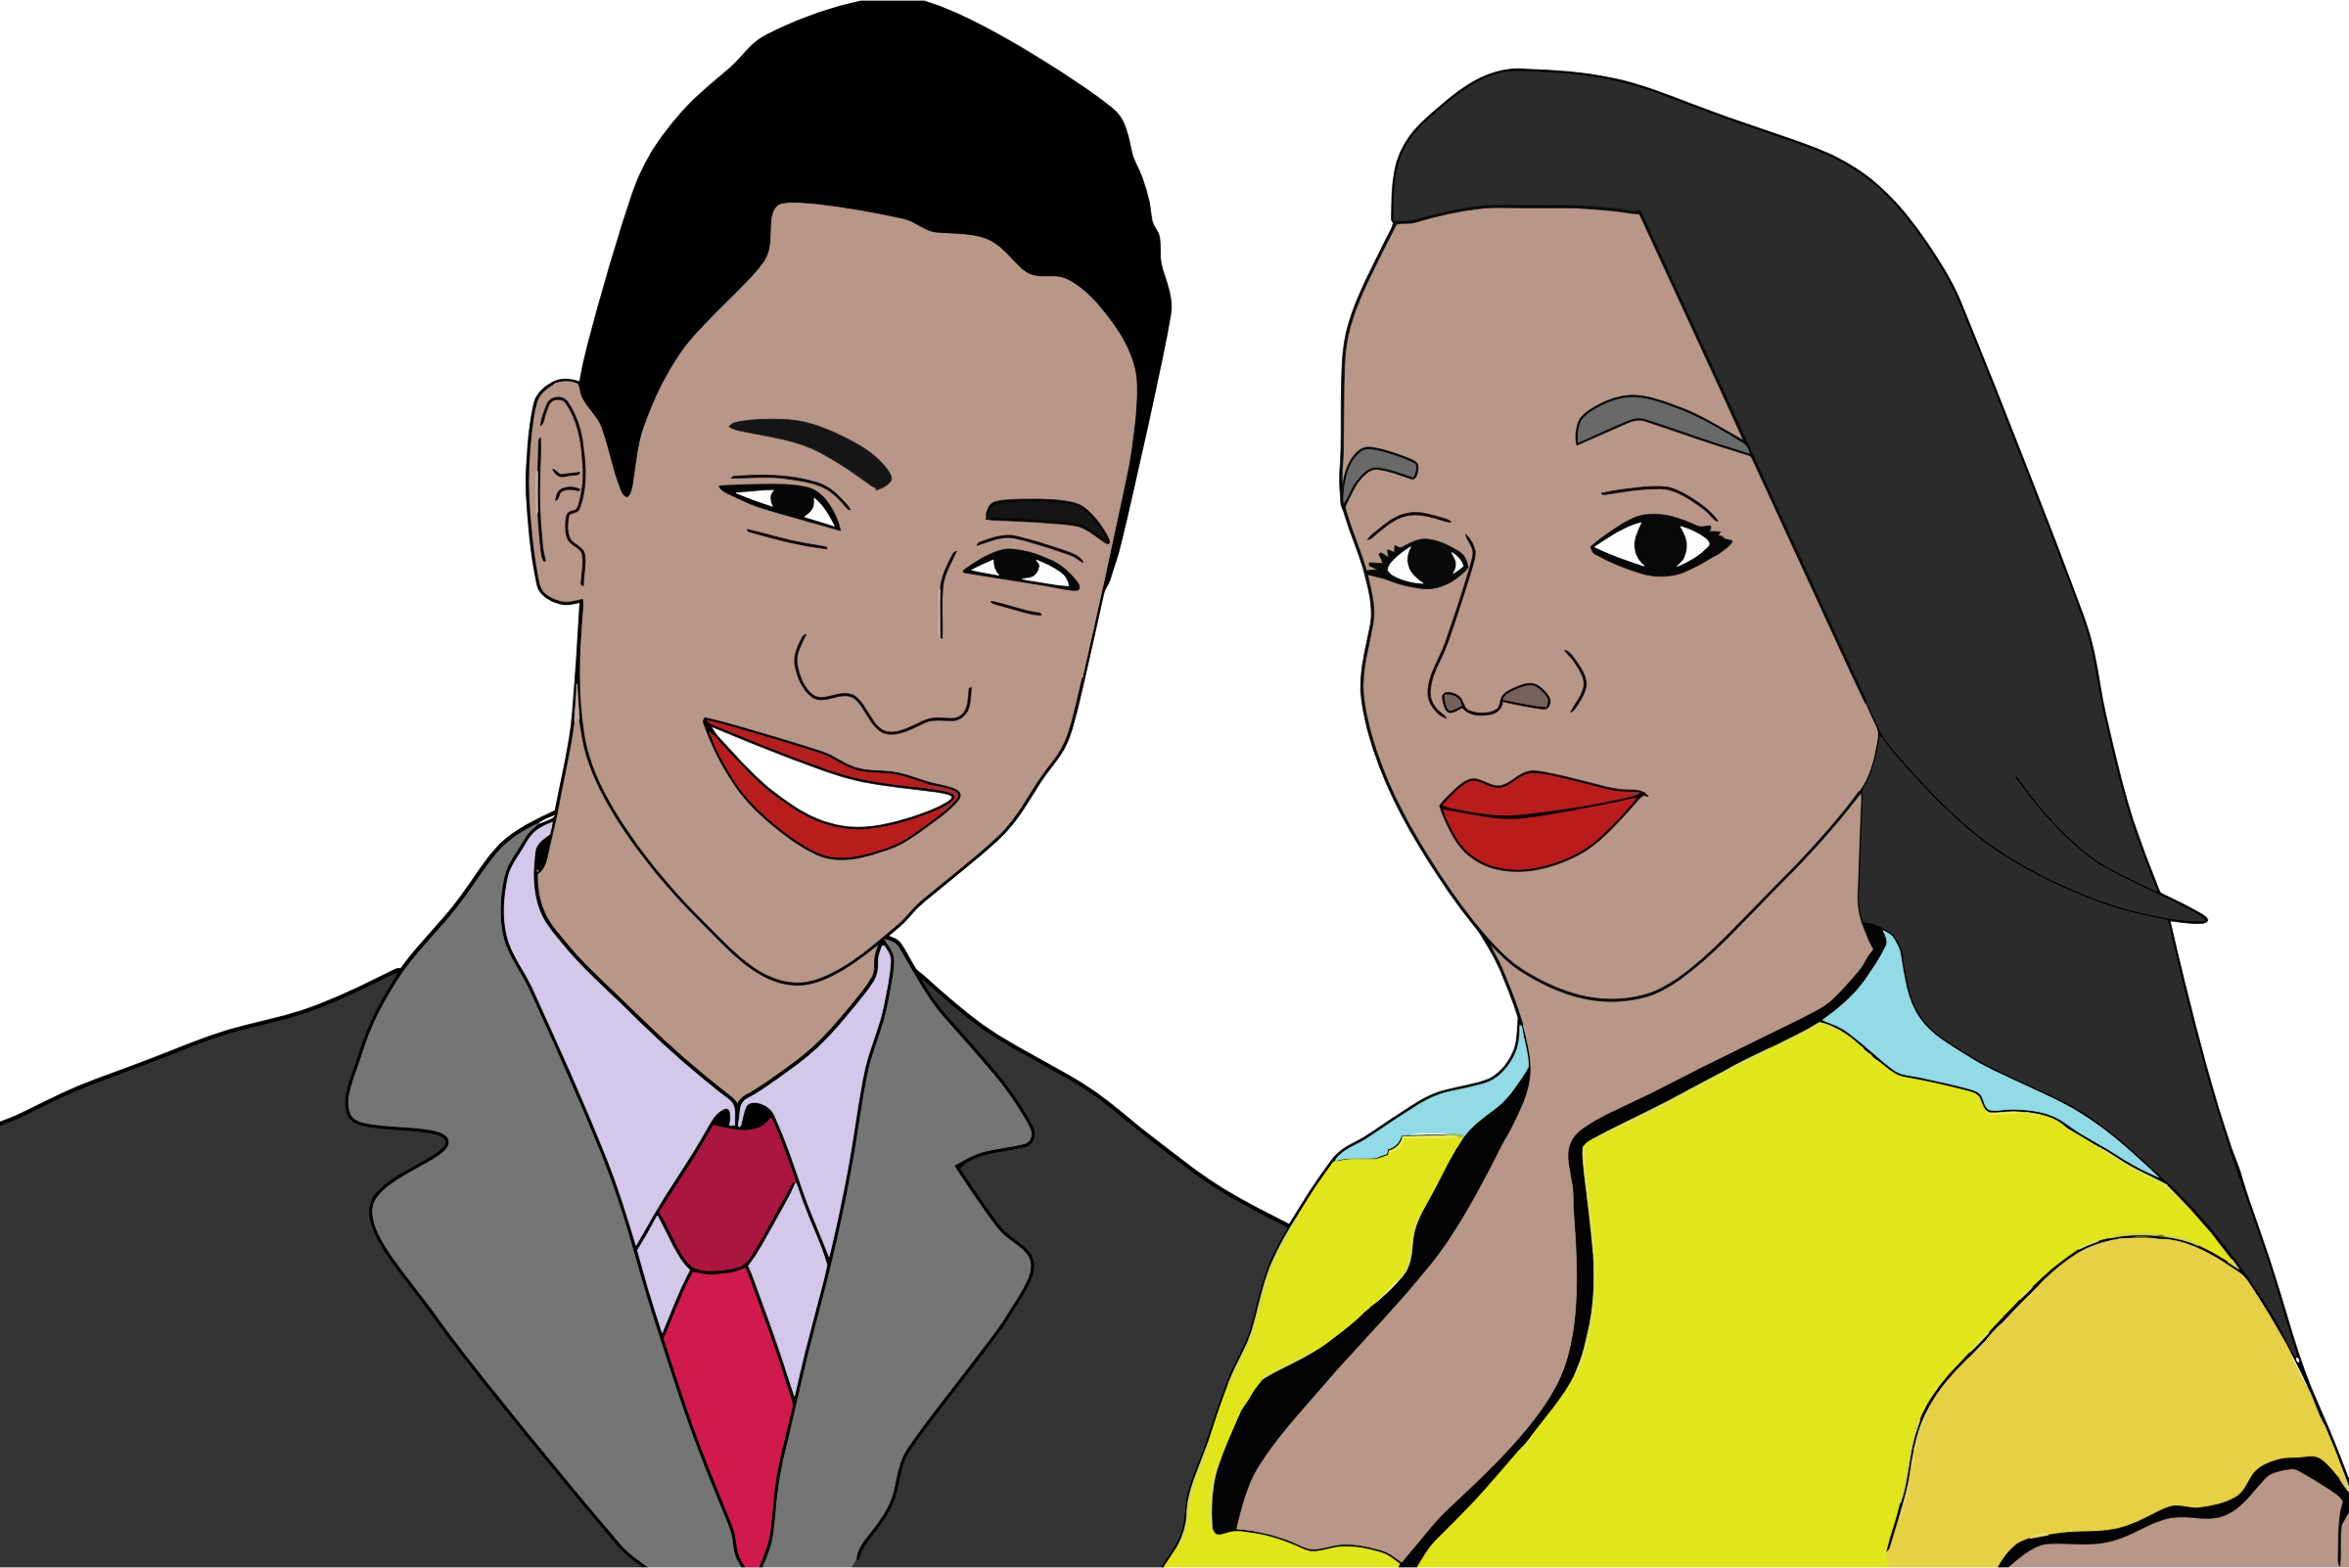 Man and woman witnesses. Male clipart realistic person